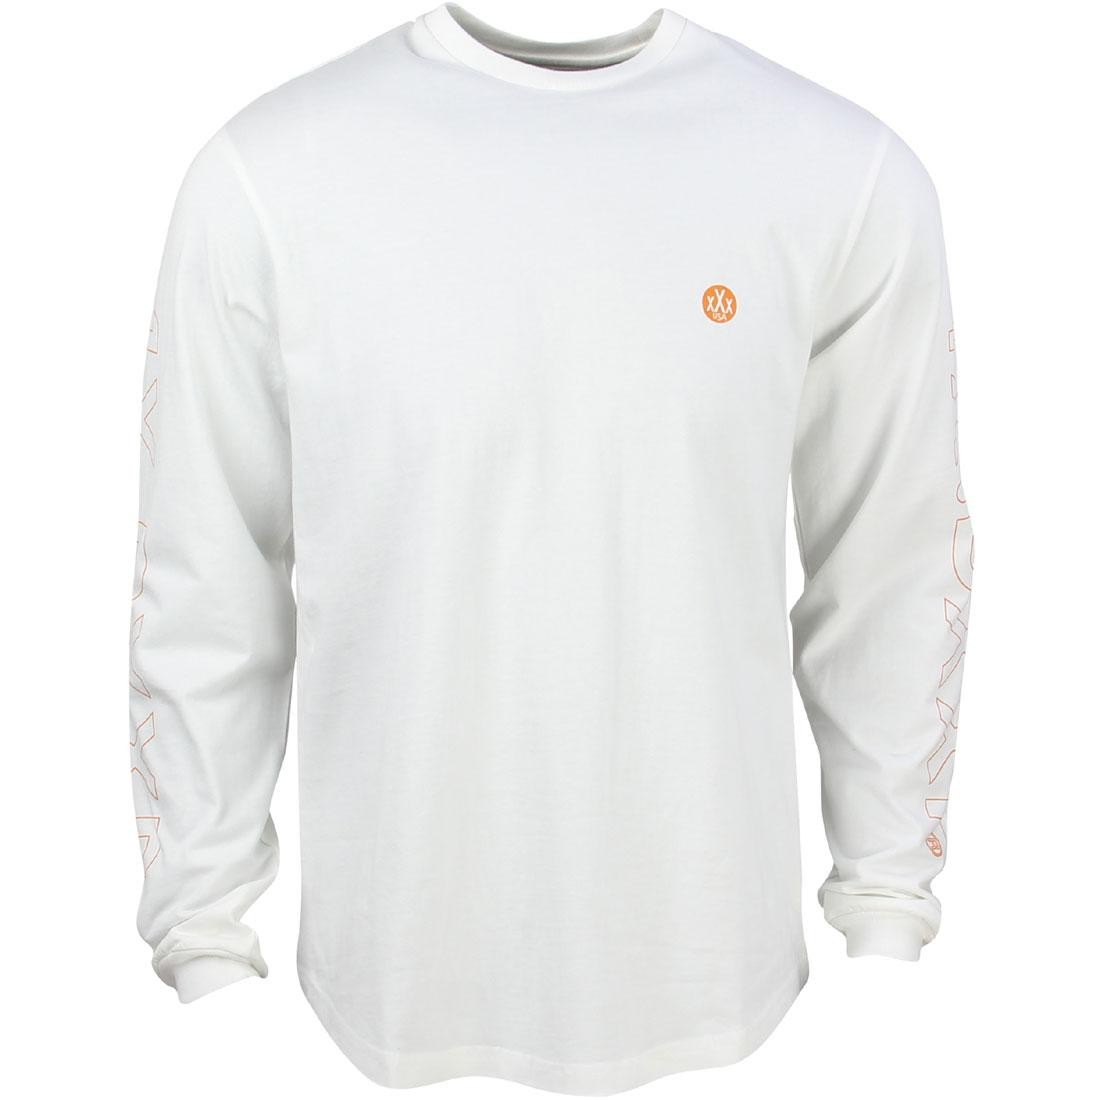 10 Deep Men Dotted Scoop Long Sleeve Tee (white / off white)